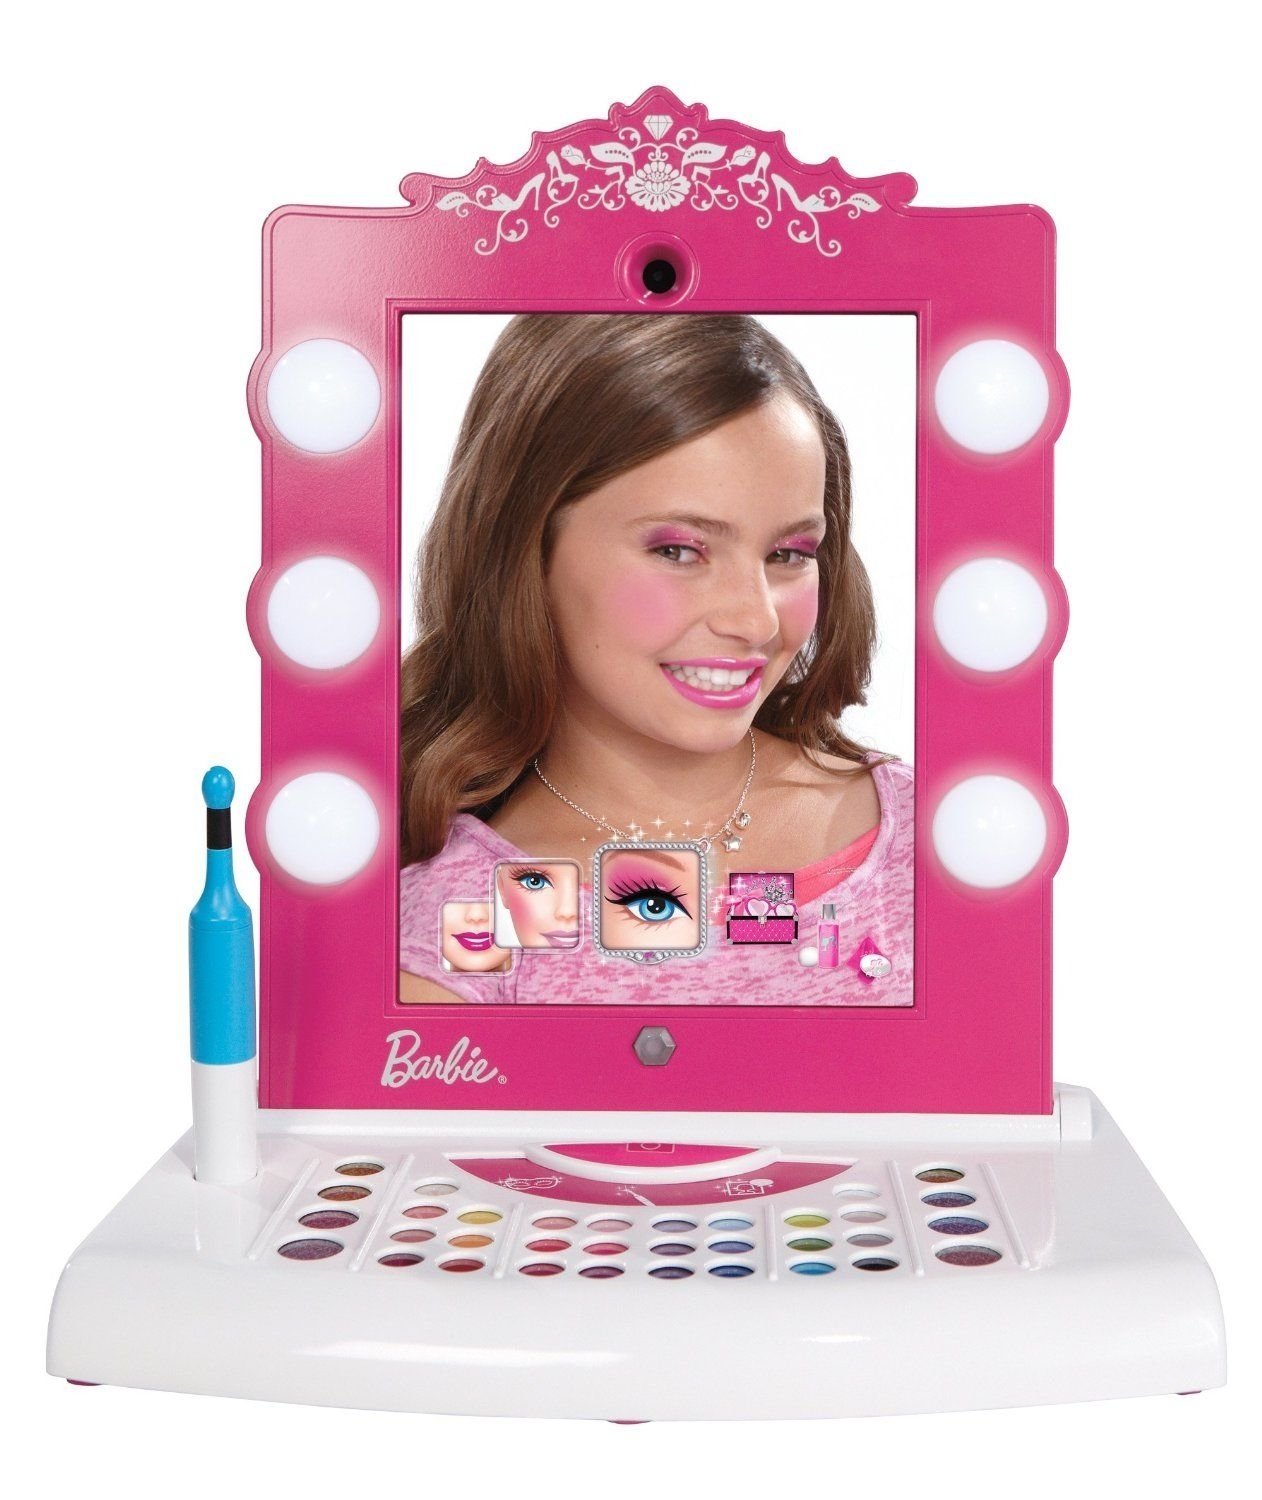 10 Lovely Gift Ideas For Girls Age 7 the totally awesome barbie digital makeover mirror for girls